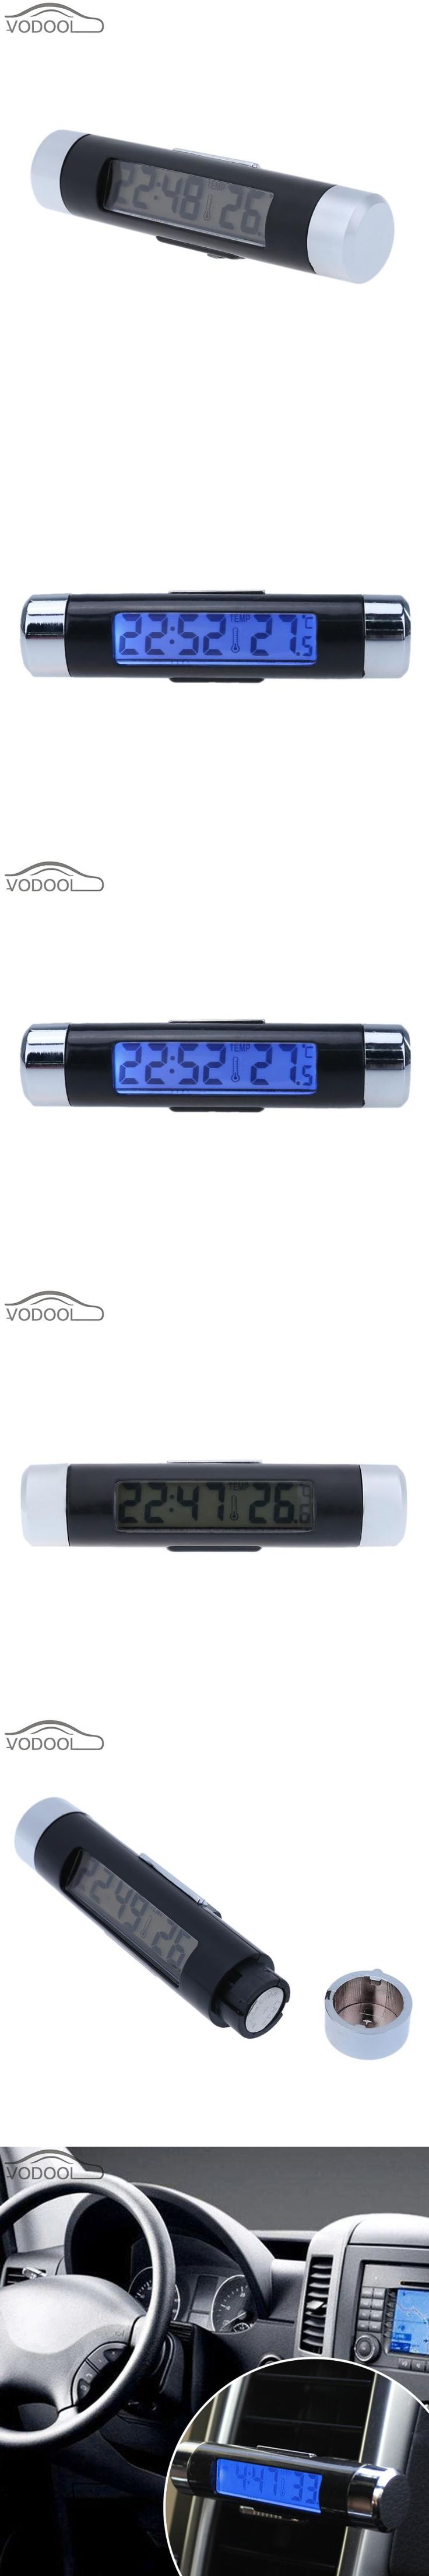 Mini Car Clock Thermometer Automobiles Interior AC Vent Suction Cup Mount Led Backlight Digital Display Temperature Meter Gauge